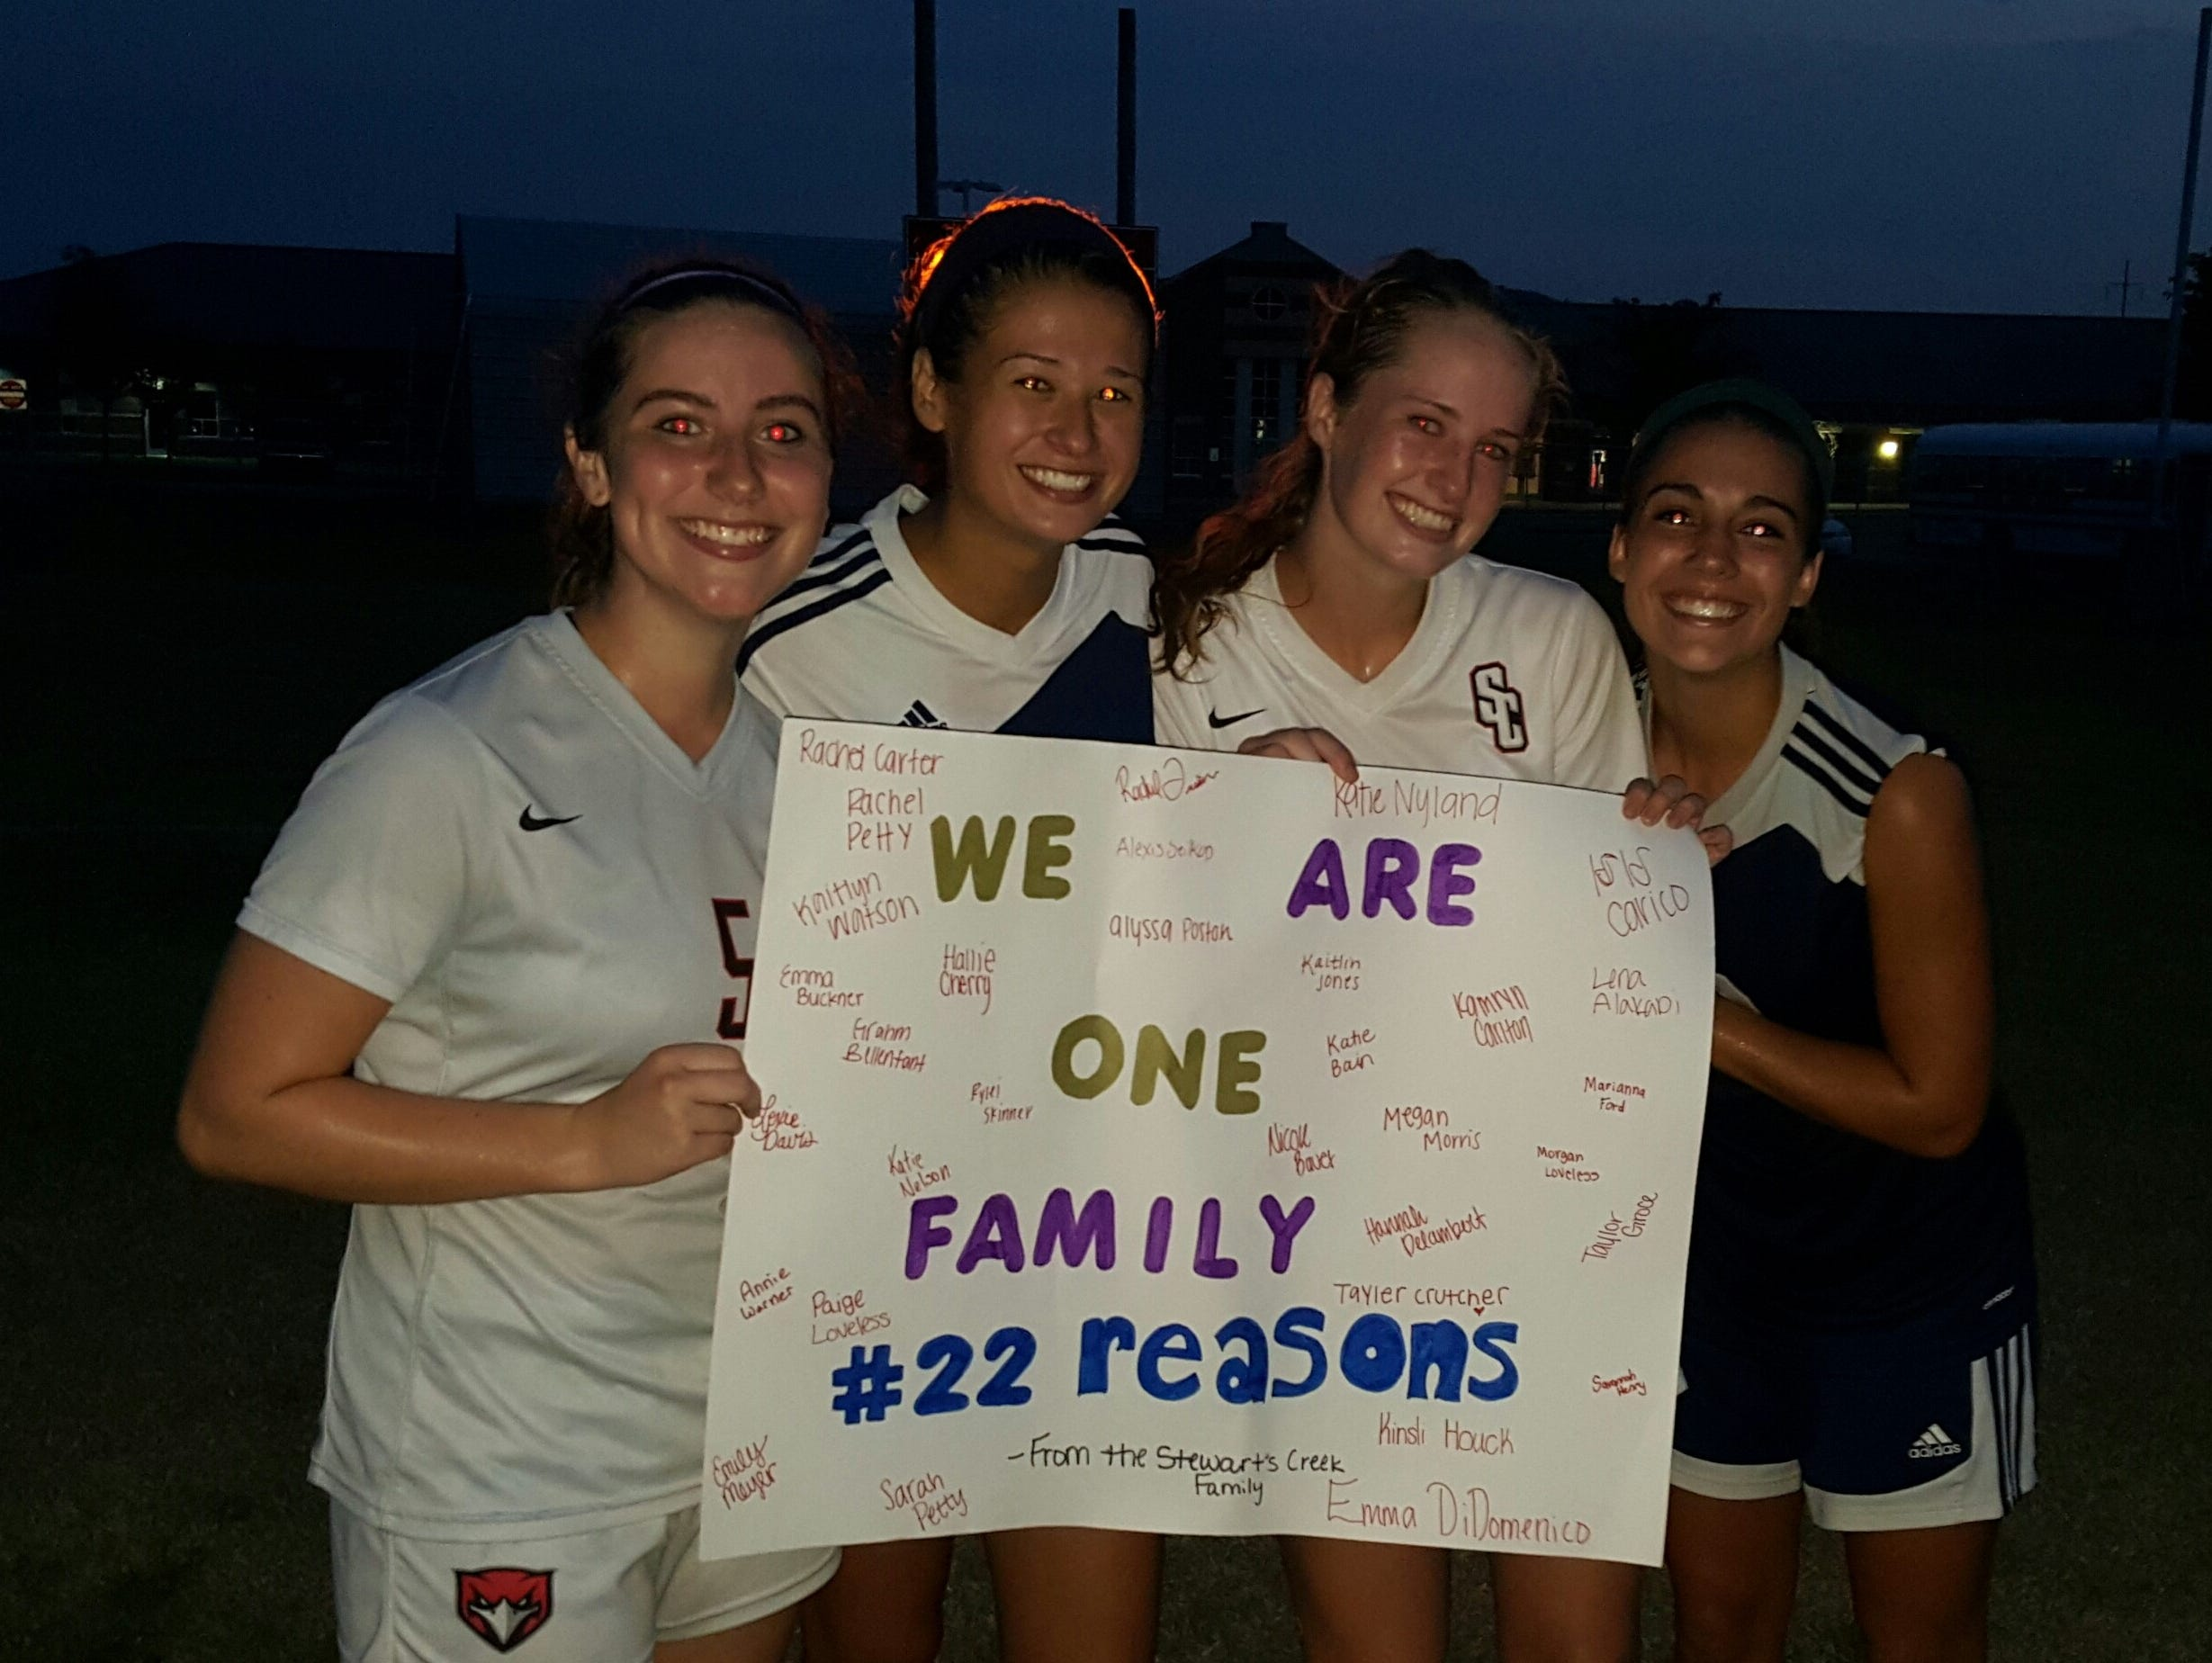 Gate proceeds from the Siegel-Stewarts Creek soccer game at Creek went to the family of Mason Loupe. Standing, from left, are Stewarts Creek's Emma DiDomenico, Siegel's Taylor Ryan, Stewarts Creek's Katie Nyland and Siegel's Madison Louk.